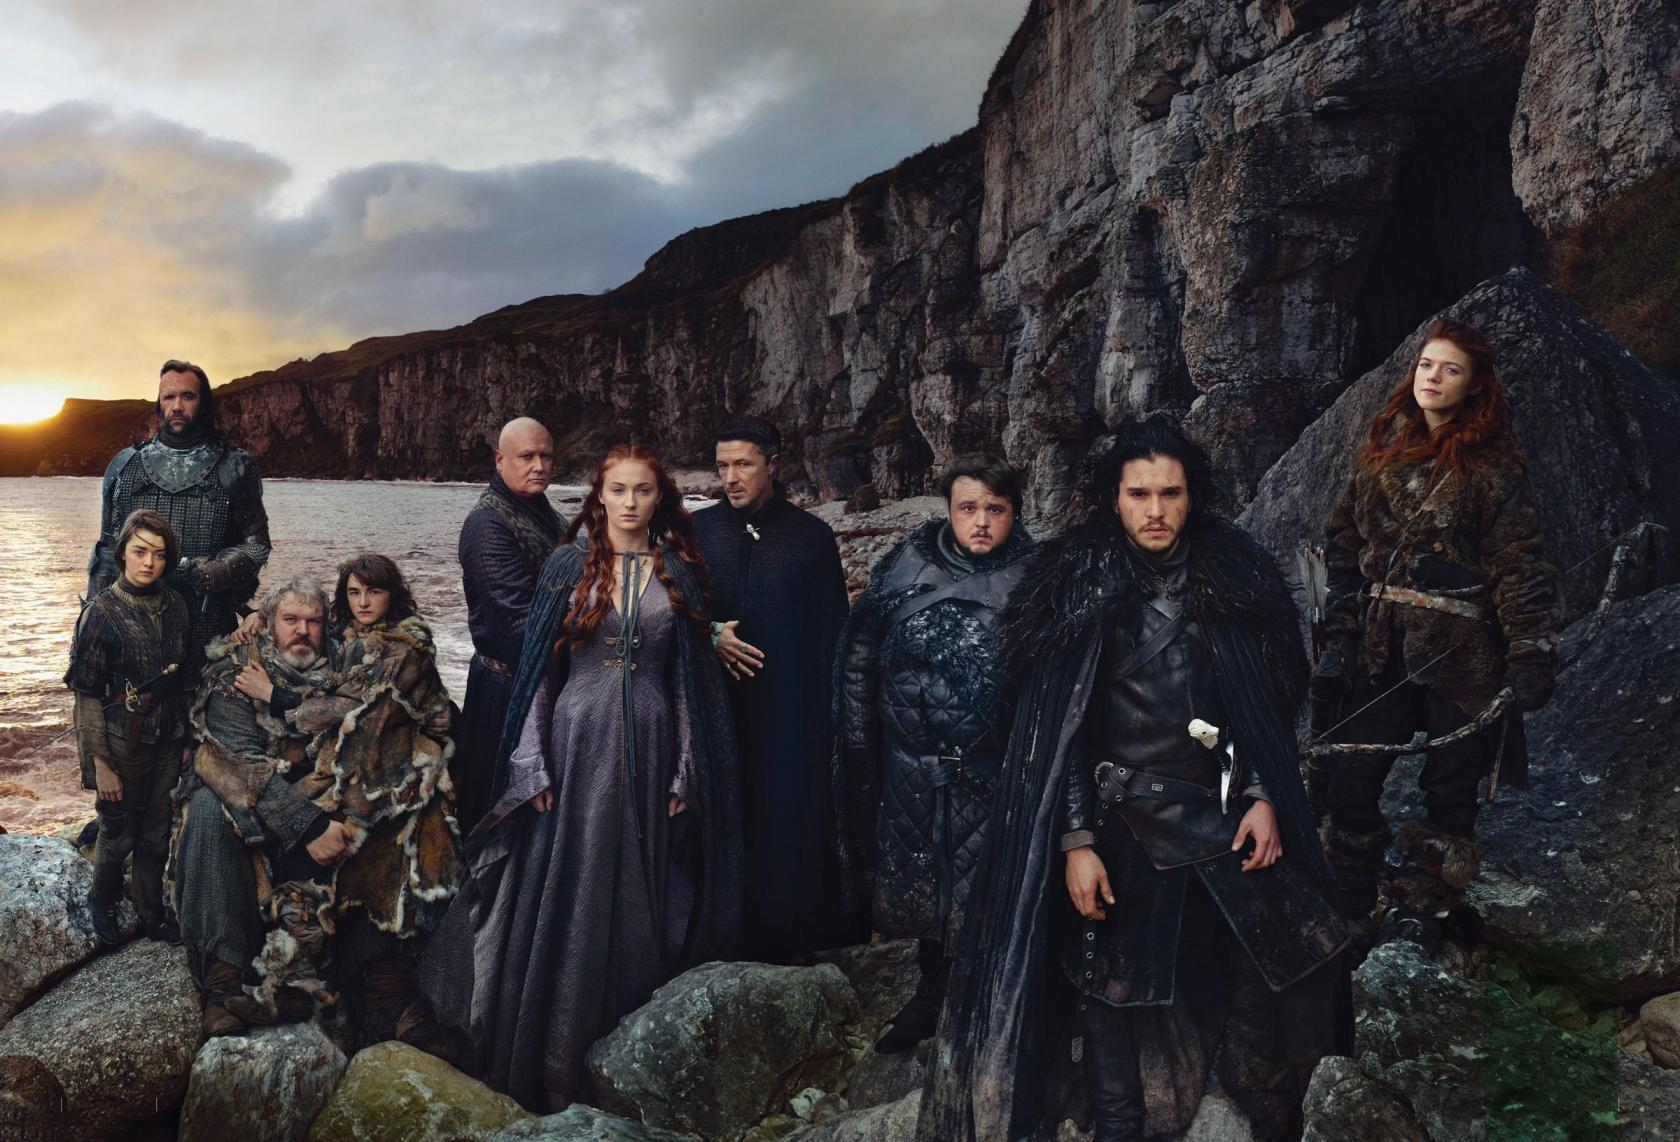 Kit Harington Sophie Turner Maisie Williams Rory Mccann Rose Leslie John Bradley Kristian Nairn Aidan Gillen Conleth Hill Isaac Hempstead Wright